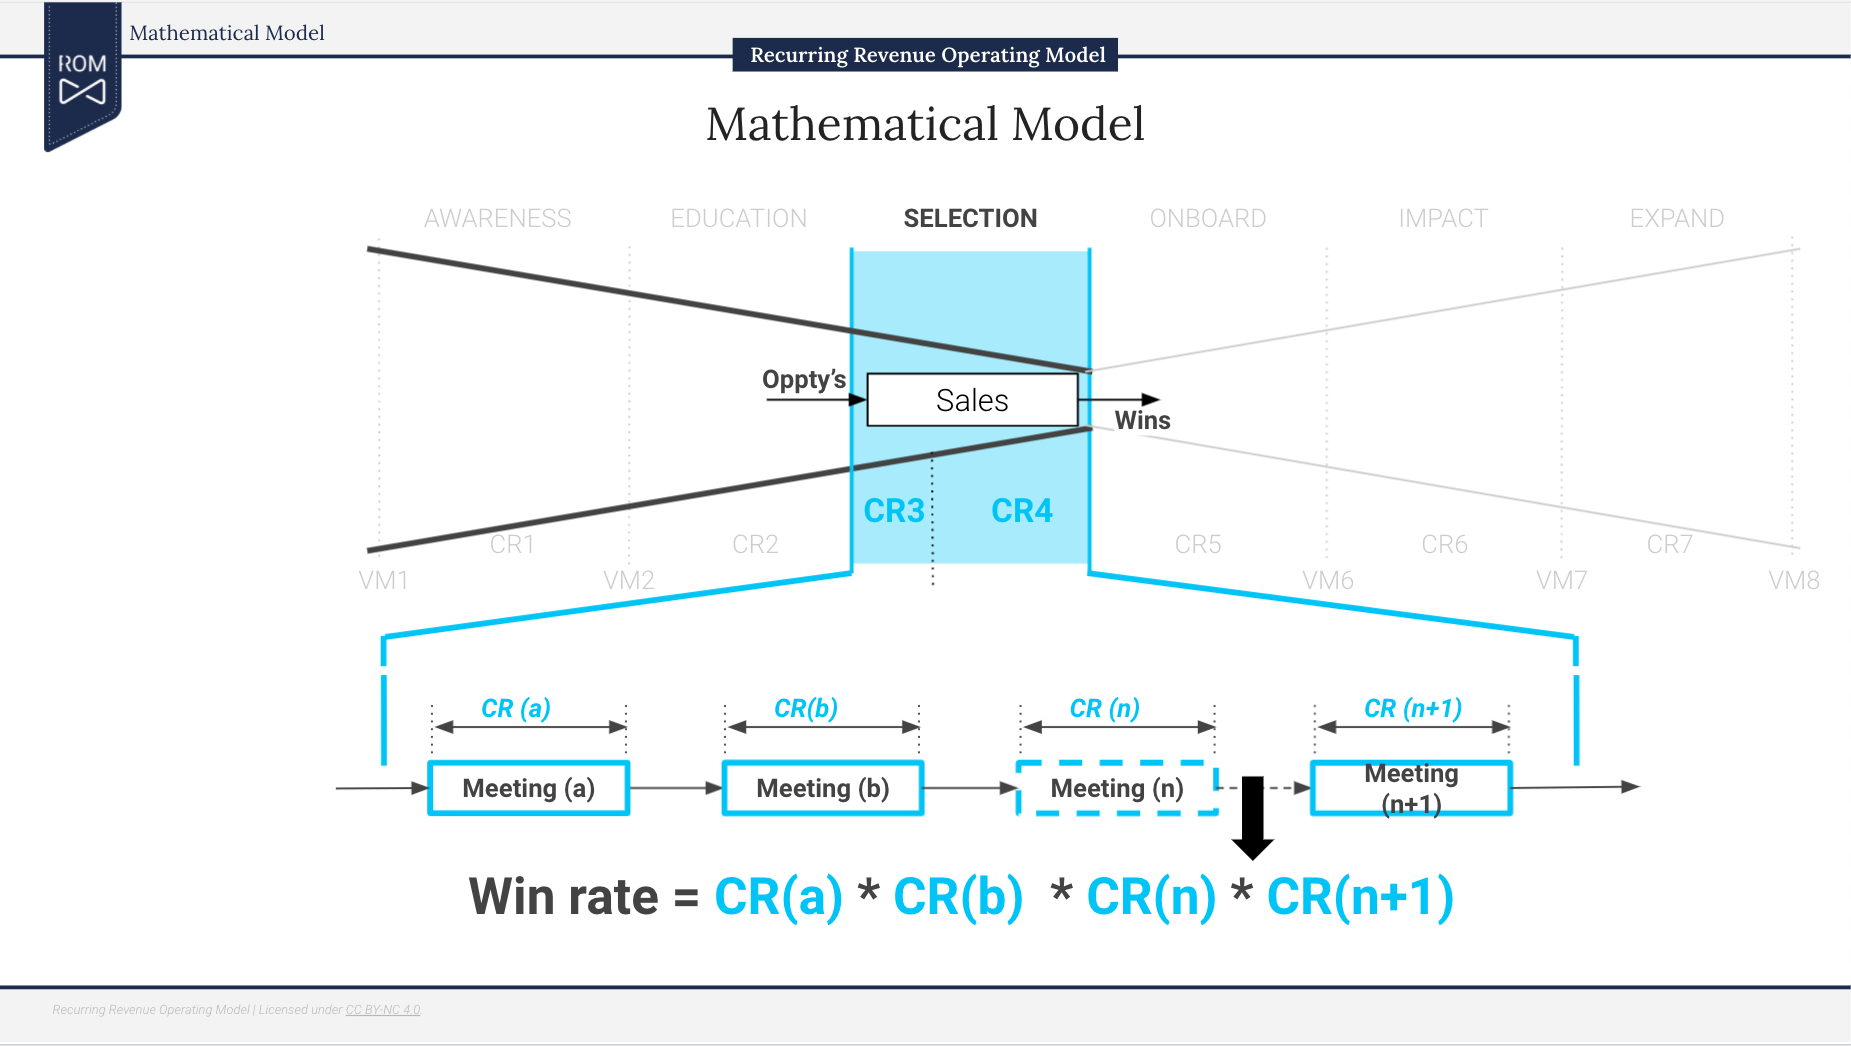 The ROM Mathematical Model, where a series of meetings comprises the win rate